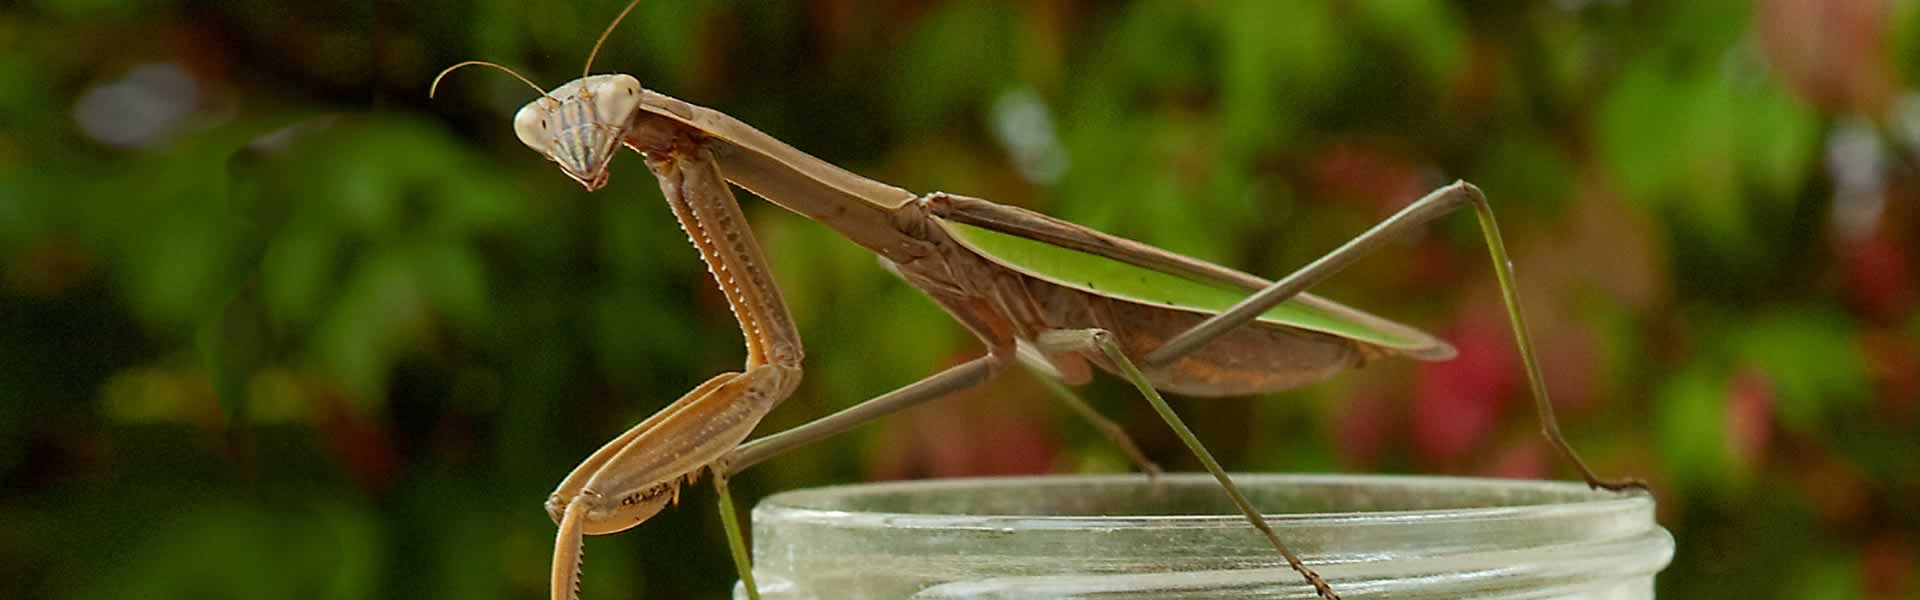 Praying Mantis Pettisville 2011